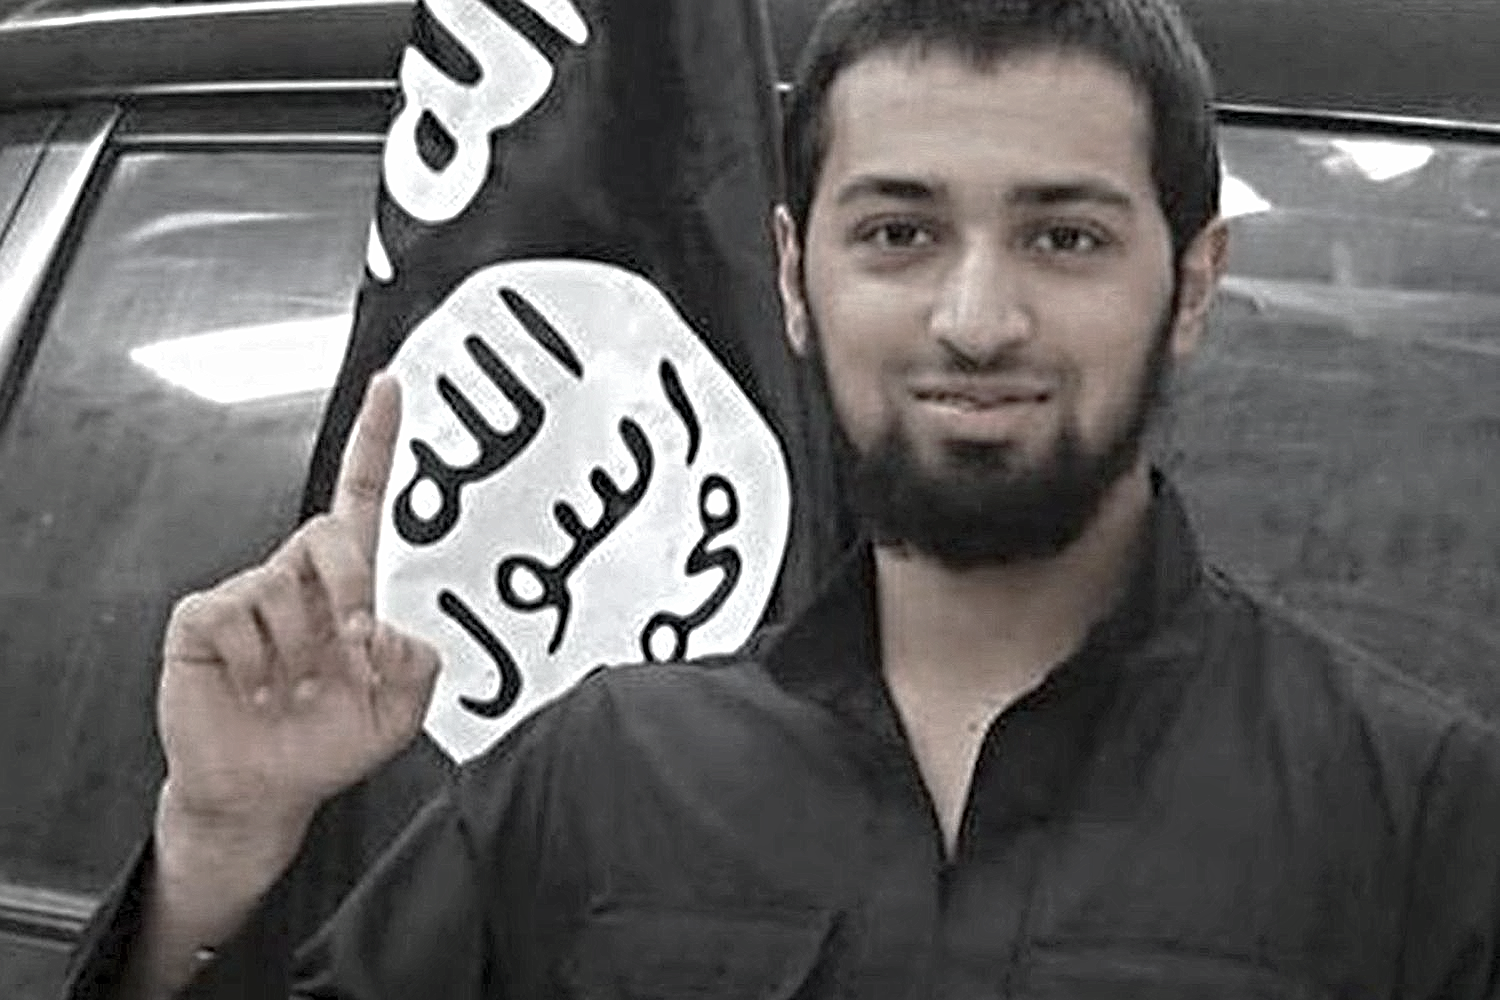 Talha Asmal, 17 from   West Yorkshire was Britain's youngest suicide bomber.